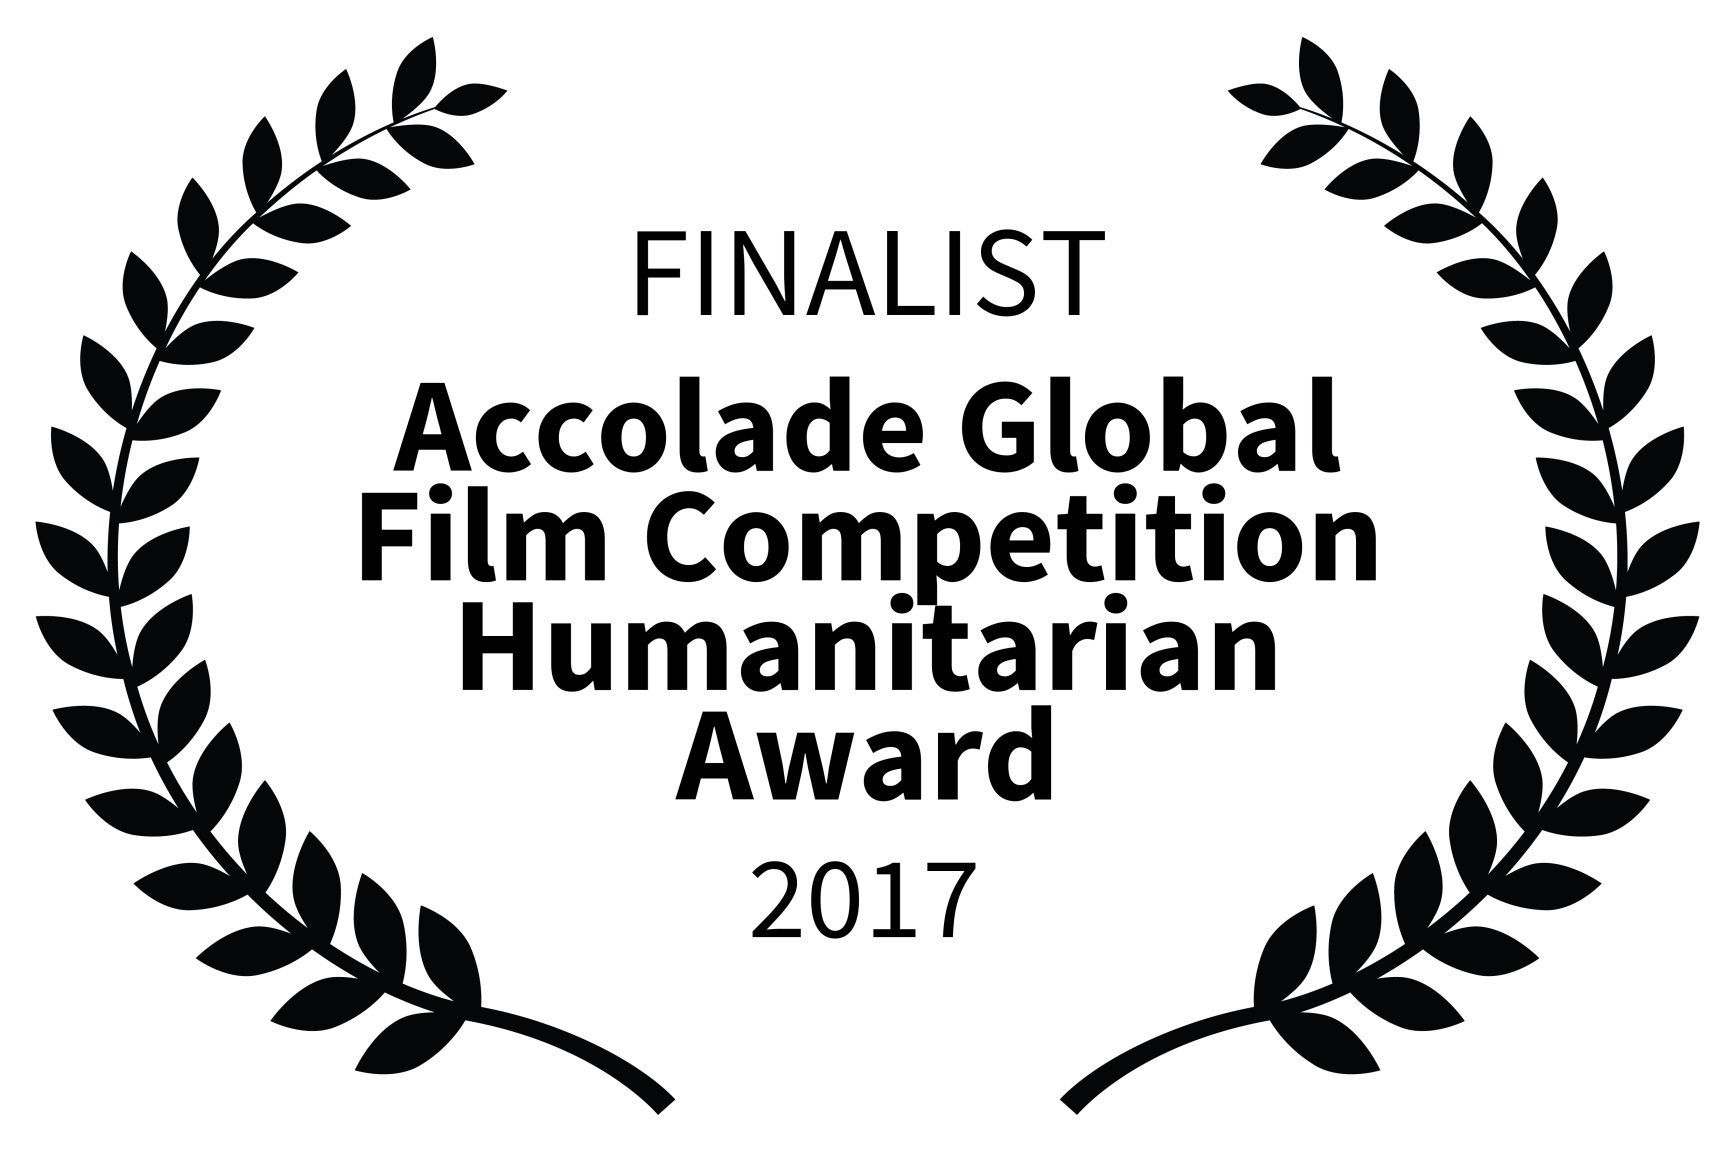 FINALIST_-_Accolade_Global_Film_Competition_Humanitarian_Award_-_2017